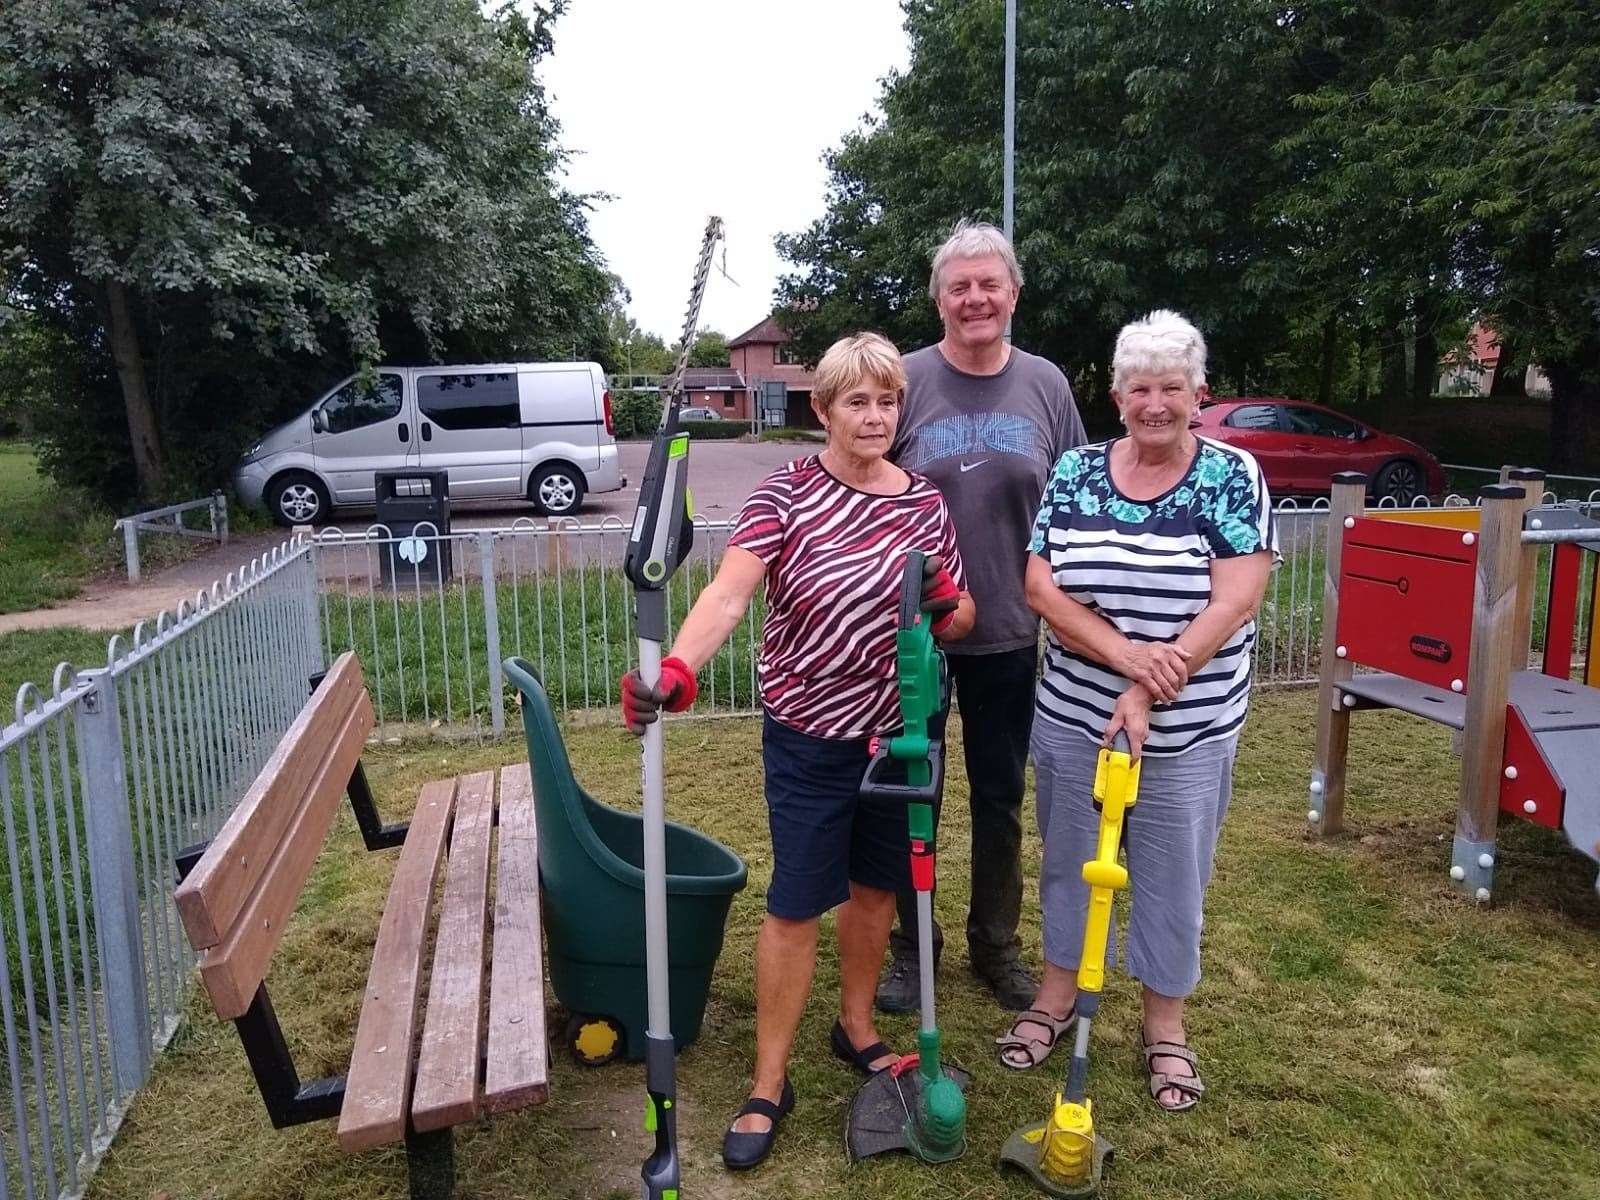 Moreton Hall residents Pauline Tarbit, Mike Moody and Linda King take action at Heldhaw Road play area.